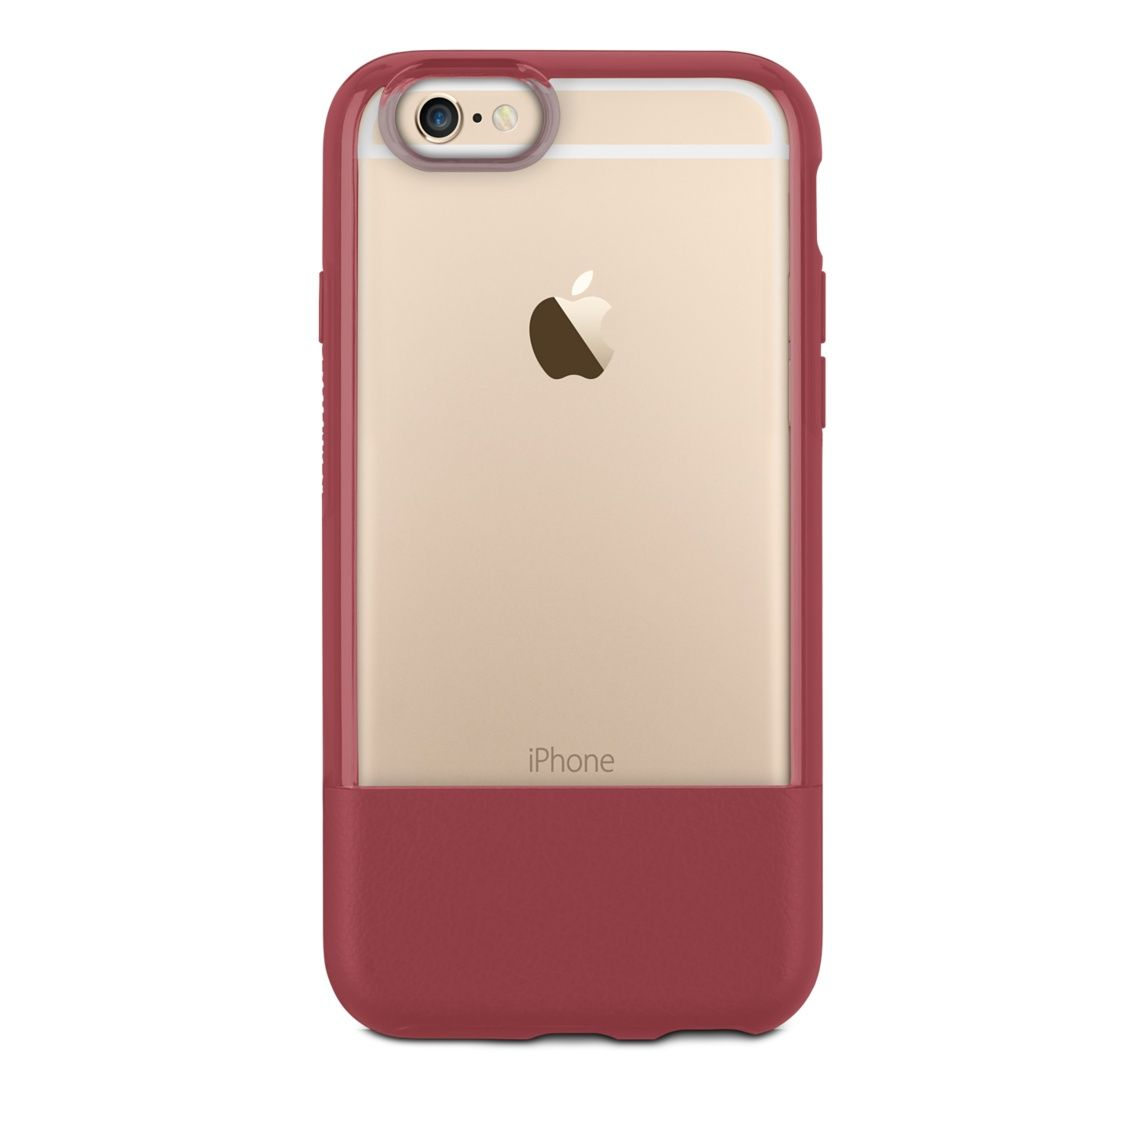 Specially designed for iPhone, the OtterBox Statement Series case combines protective strength with sleek beauty. Buy online now at apple.com.